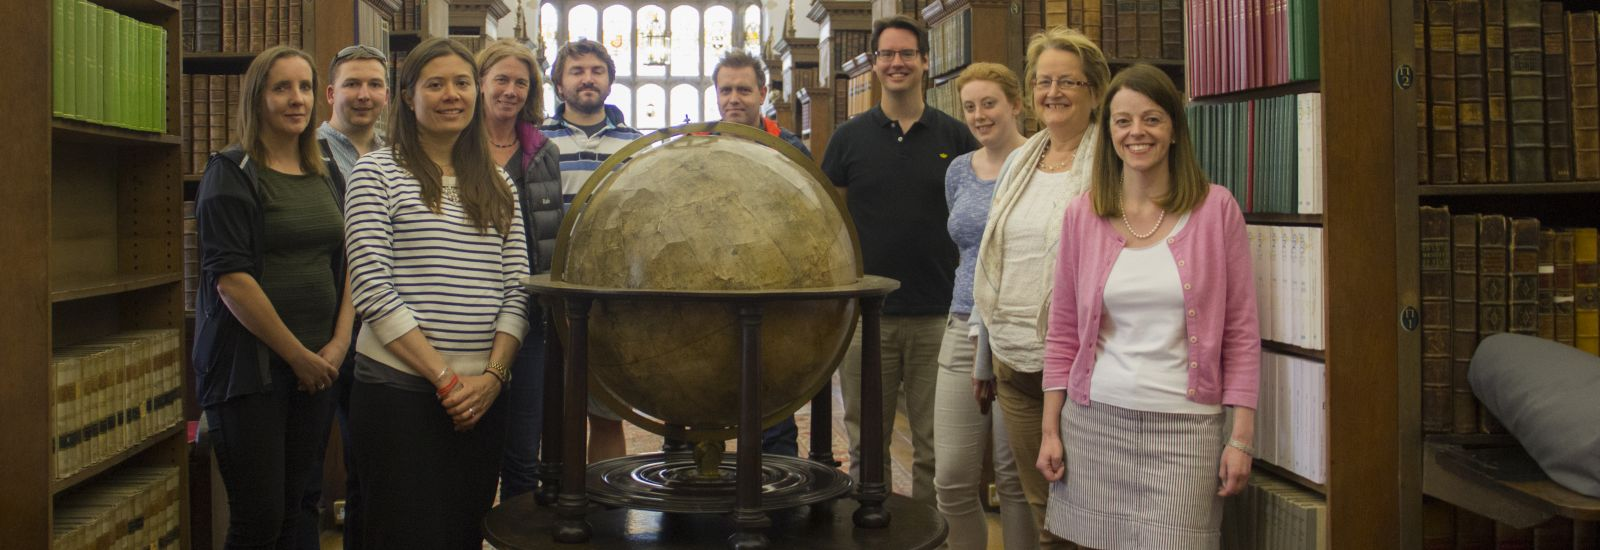 A group of teachers attending the St John's College teachers' residential, touring the college library.